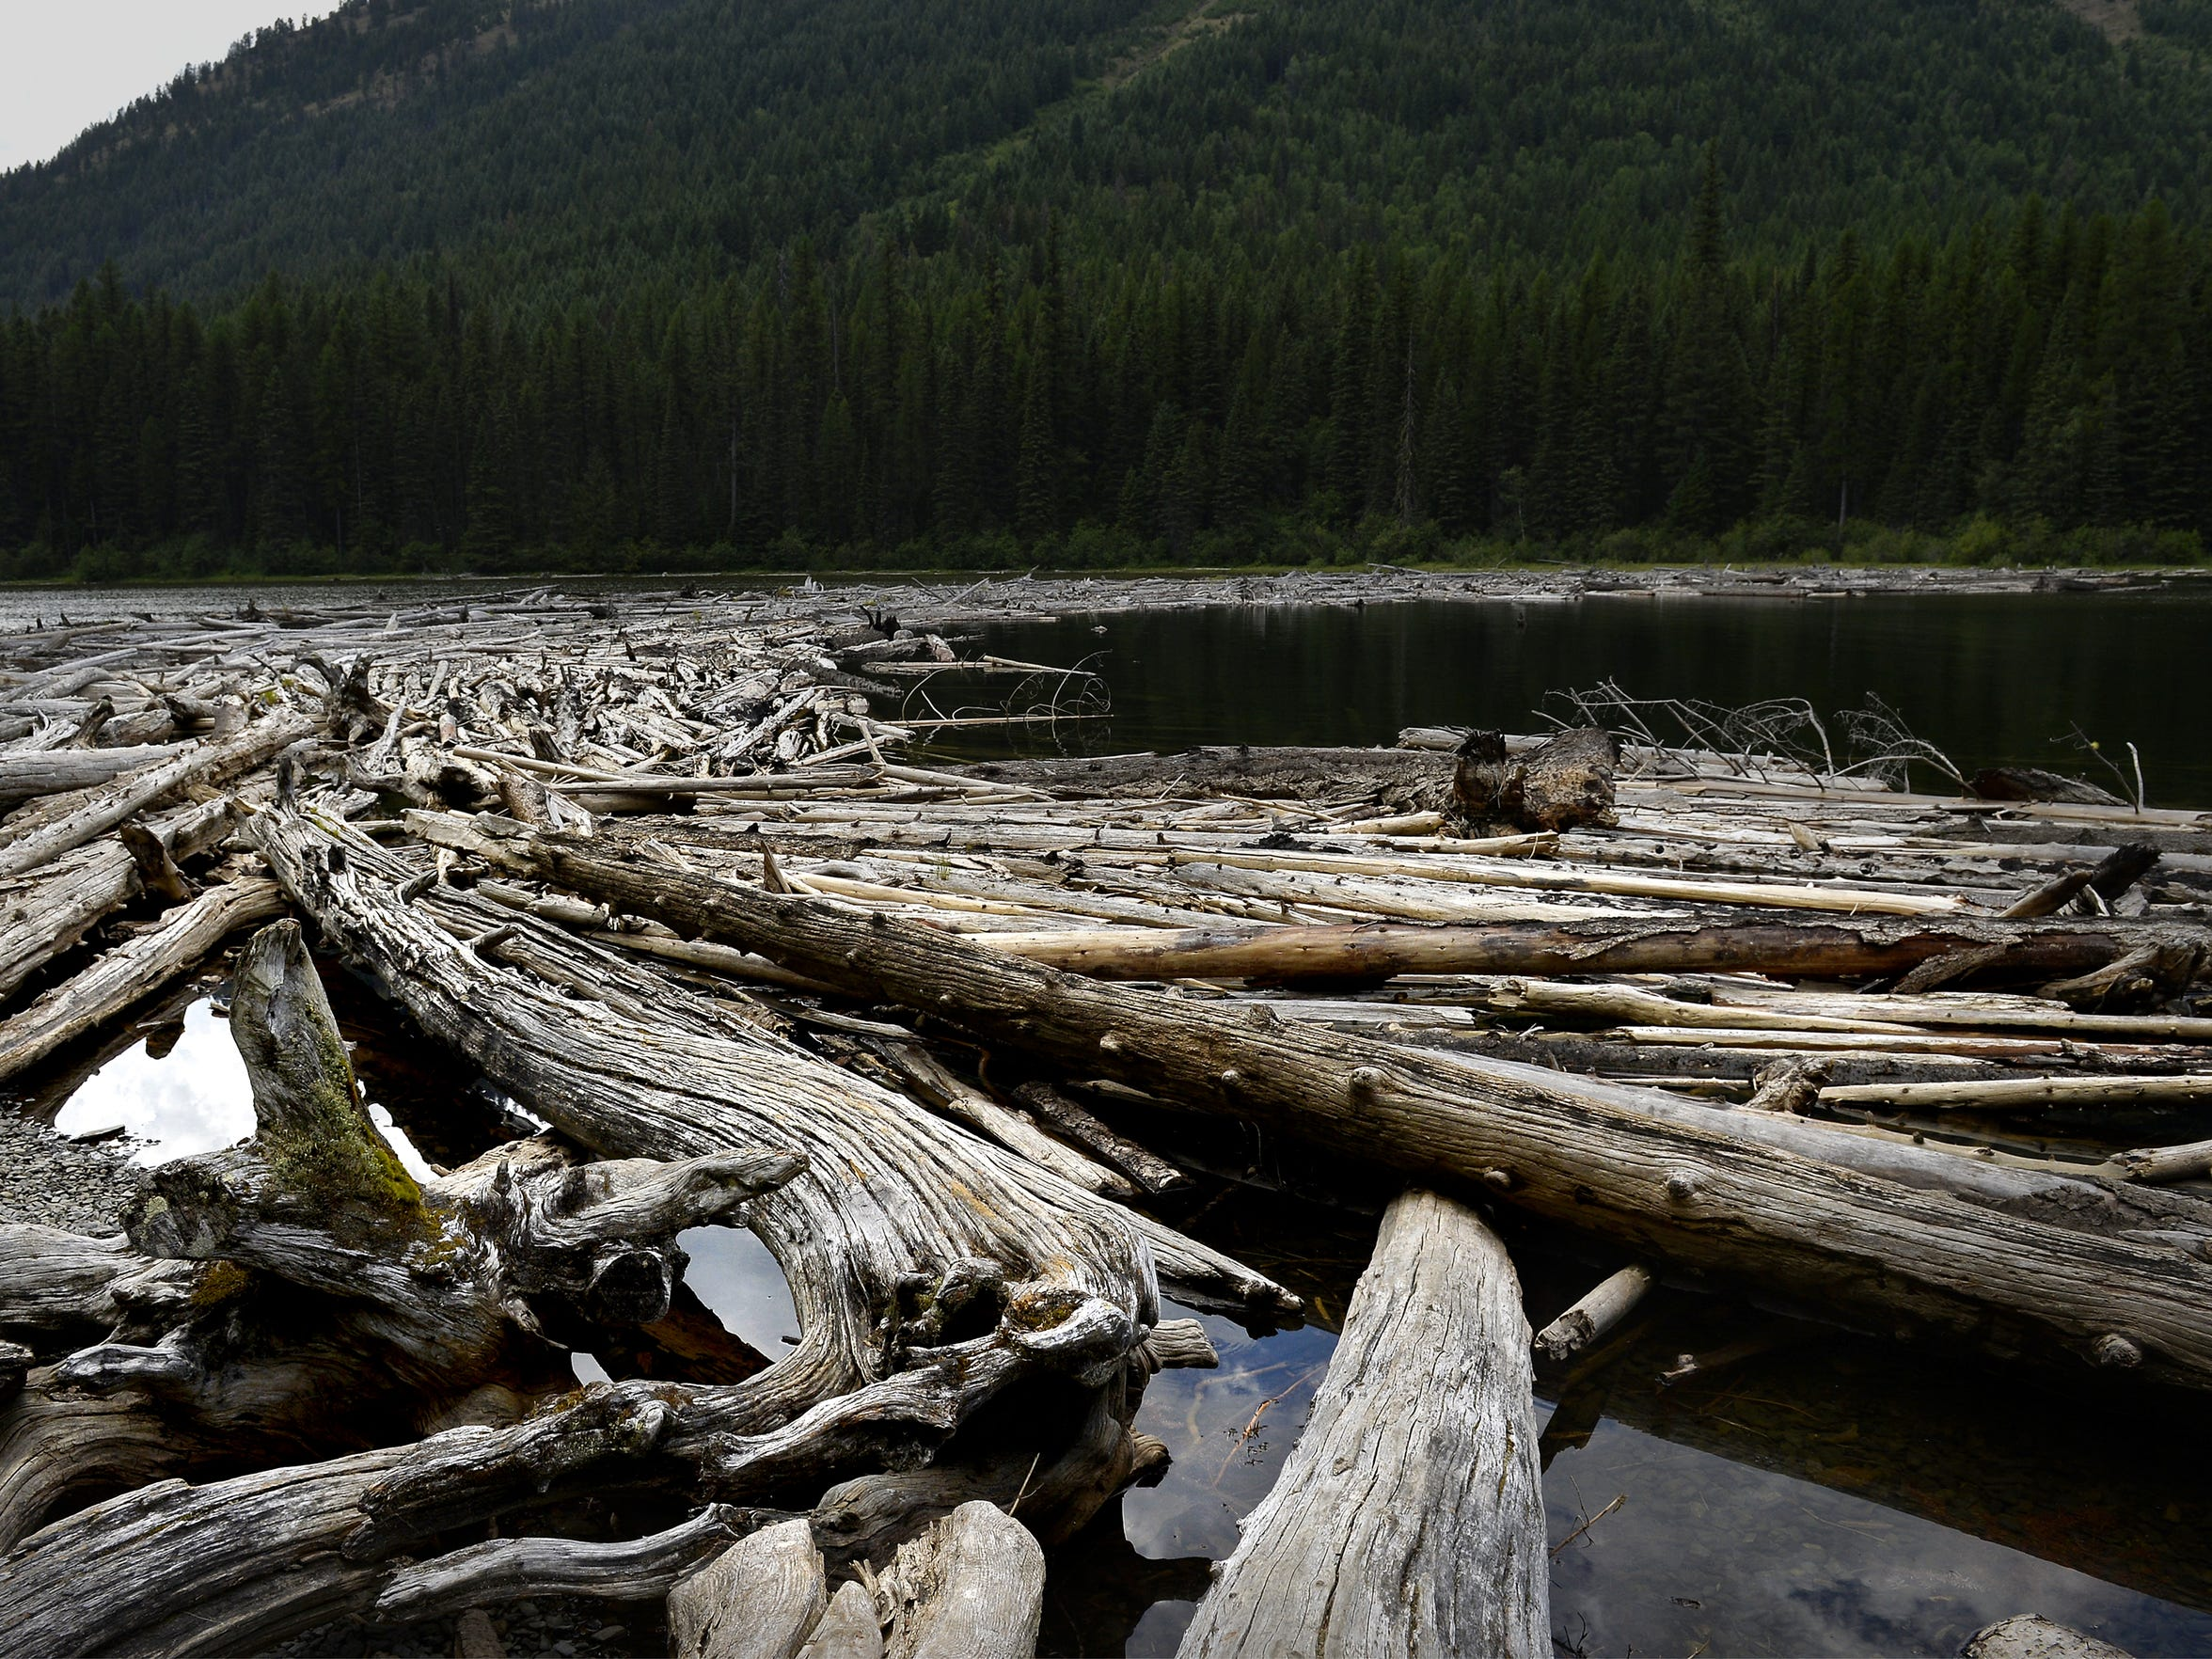 The log jam at Trout Lake in Glacier National Park.